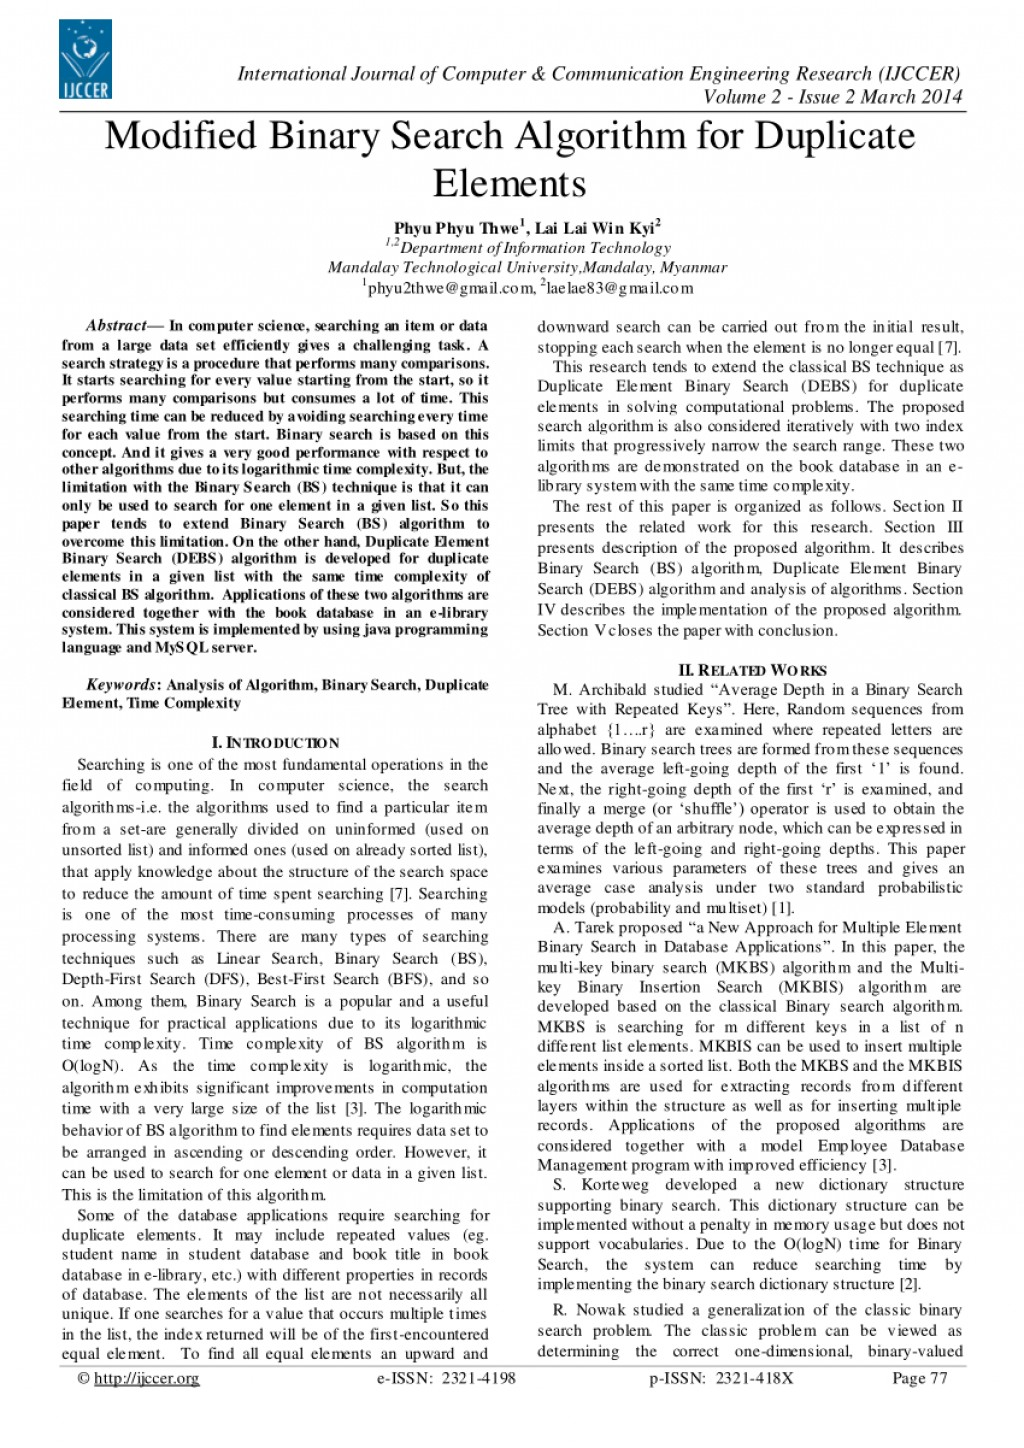 004 Research Paper Largepreview Binary Search Algorithm Frightening Papers Large